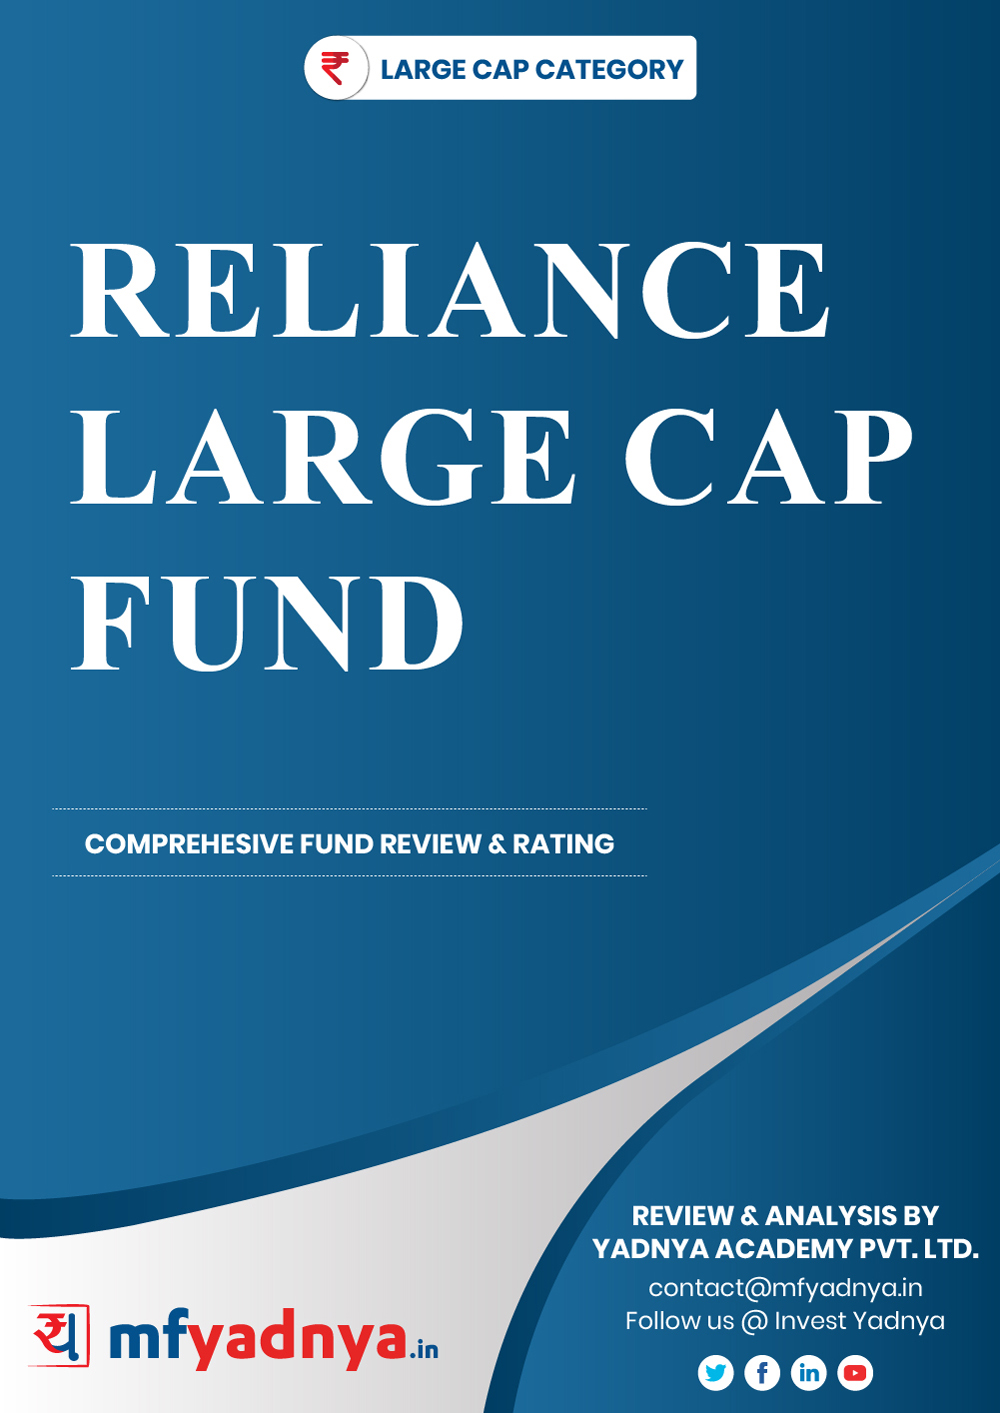 Large Cap Category Review - Reliance Large Cap Fund. Most Comprehensive and detailed MF review based on Yadnya's proprietary methodology of Green, Yellow & Red Star. Detailed Analysis & Review based on August 31st, 2019 data.